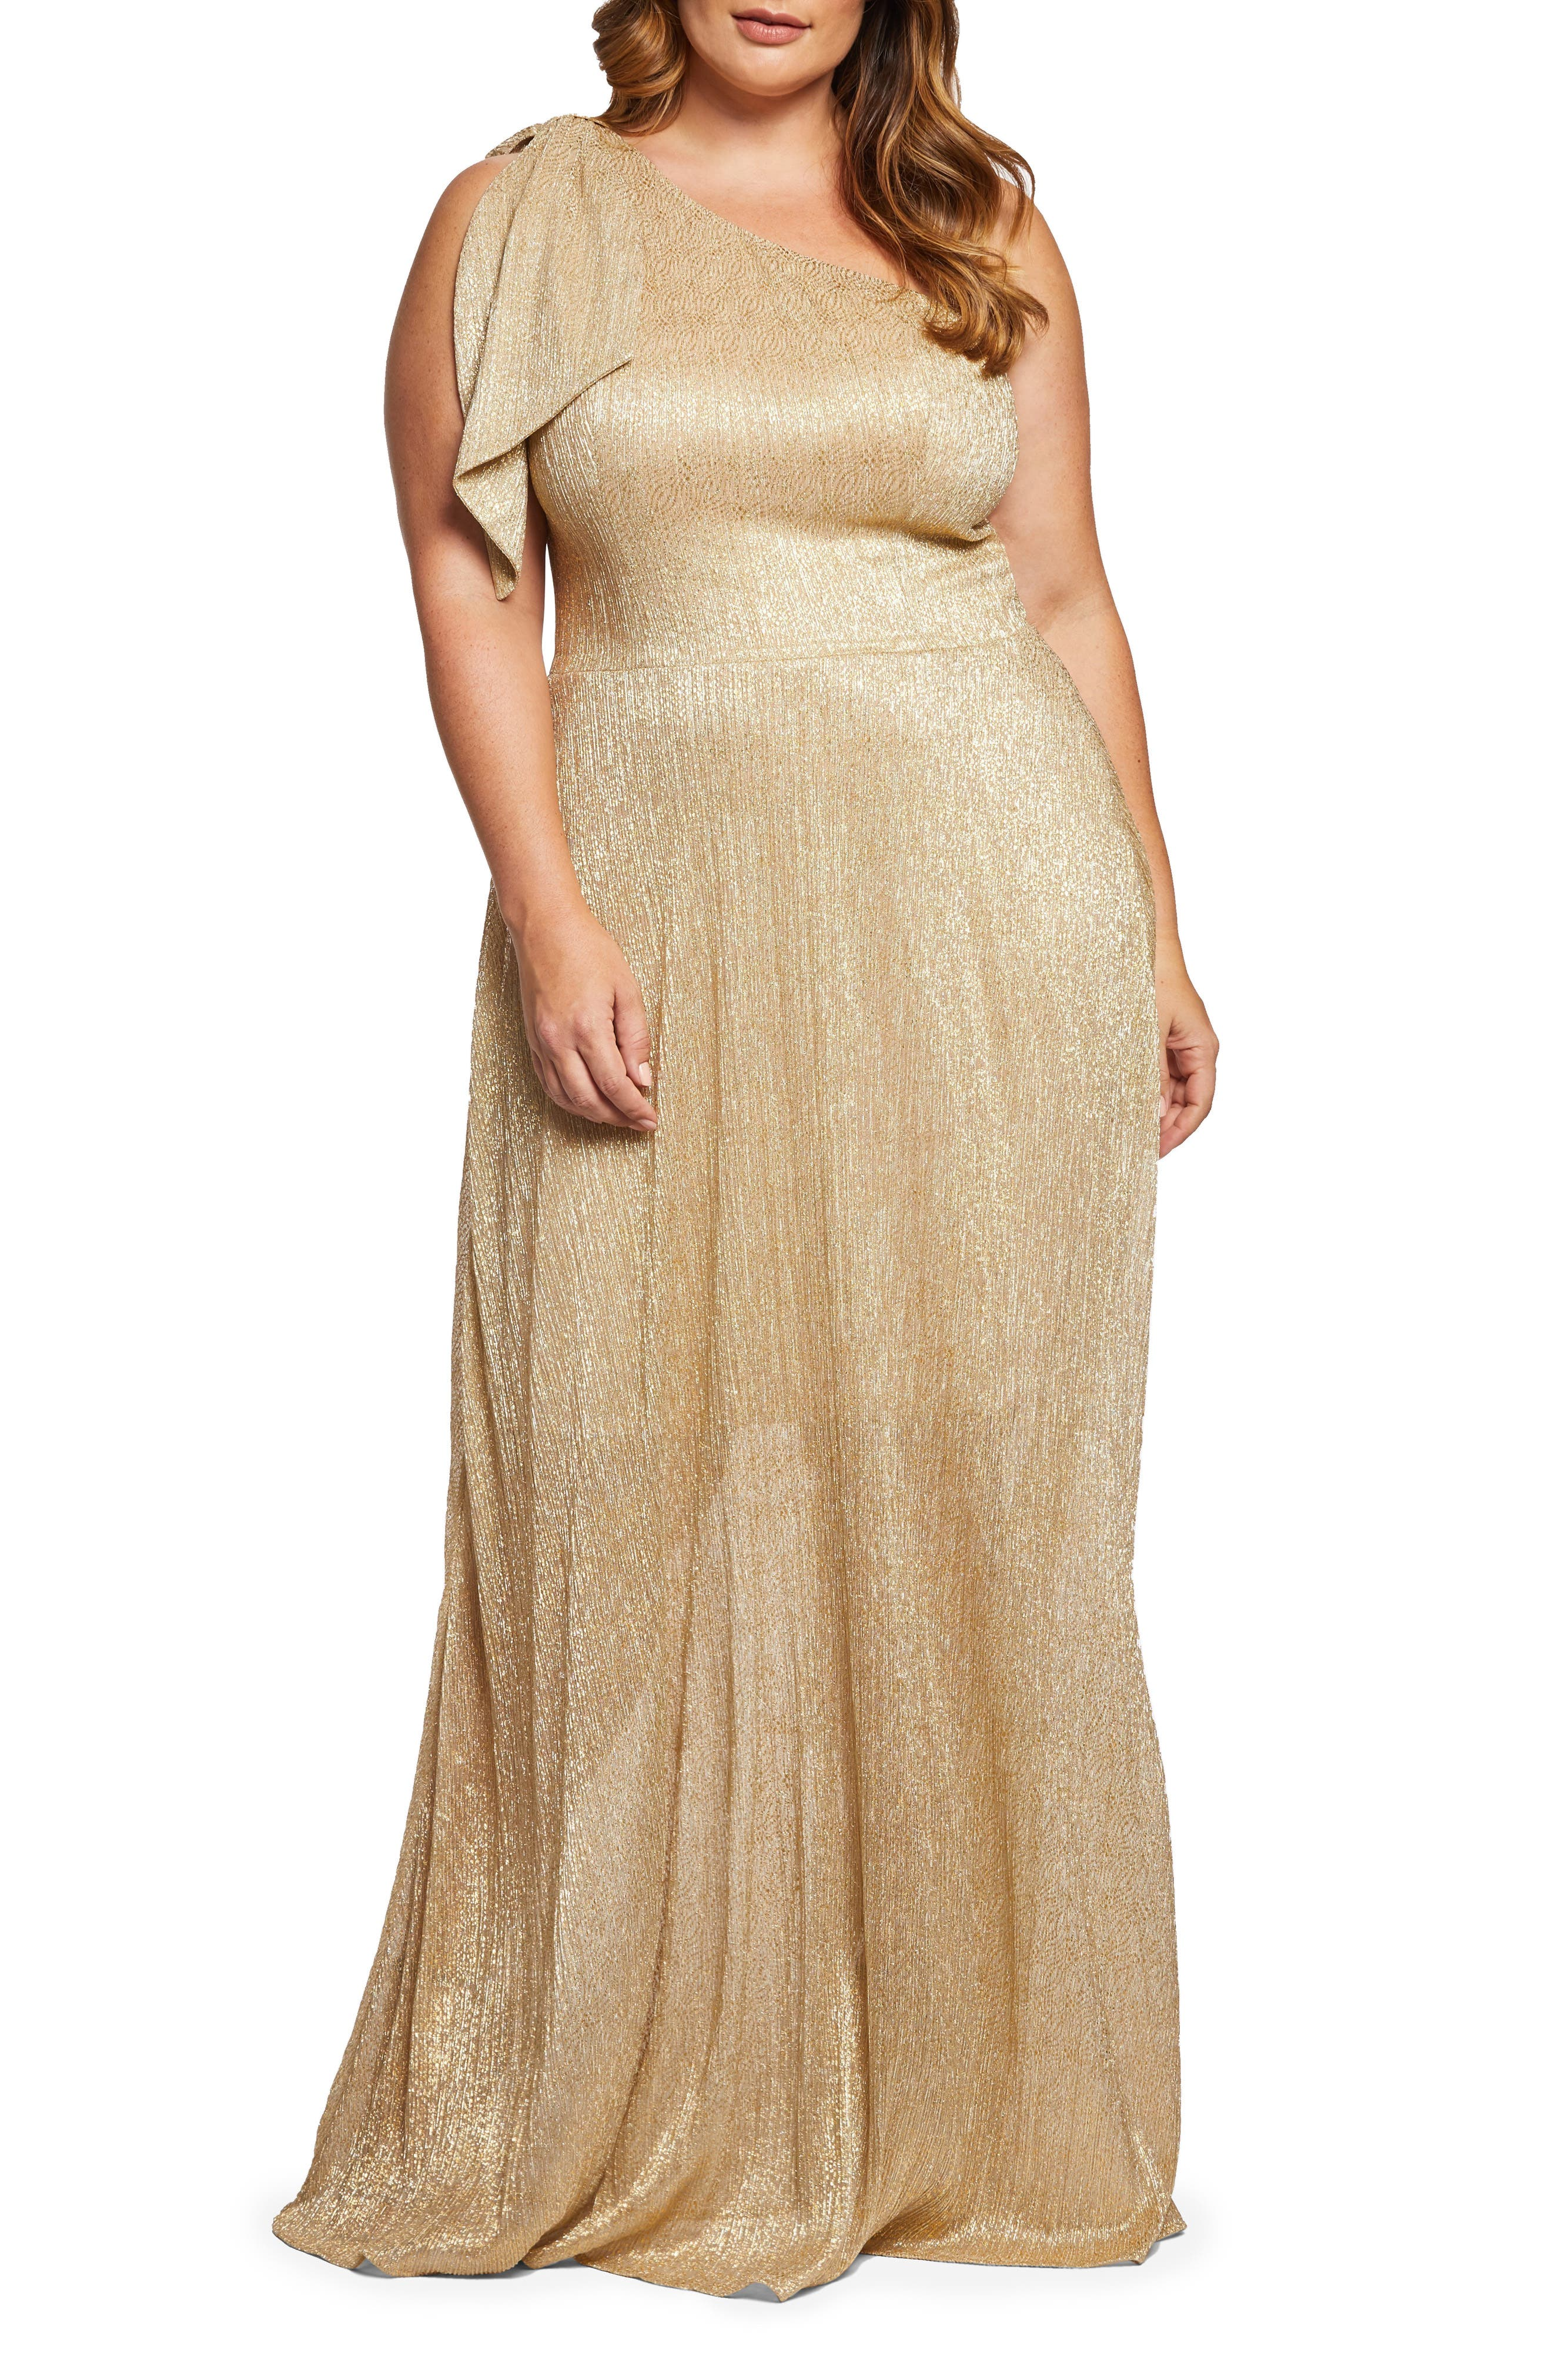 70s Prom, Formal, Evening, Party Dresses Plus Size Womens Dress The Population Savannah One-Shoulder Gown $178.80 AT vintagedancer.com